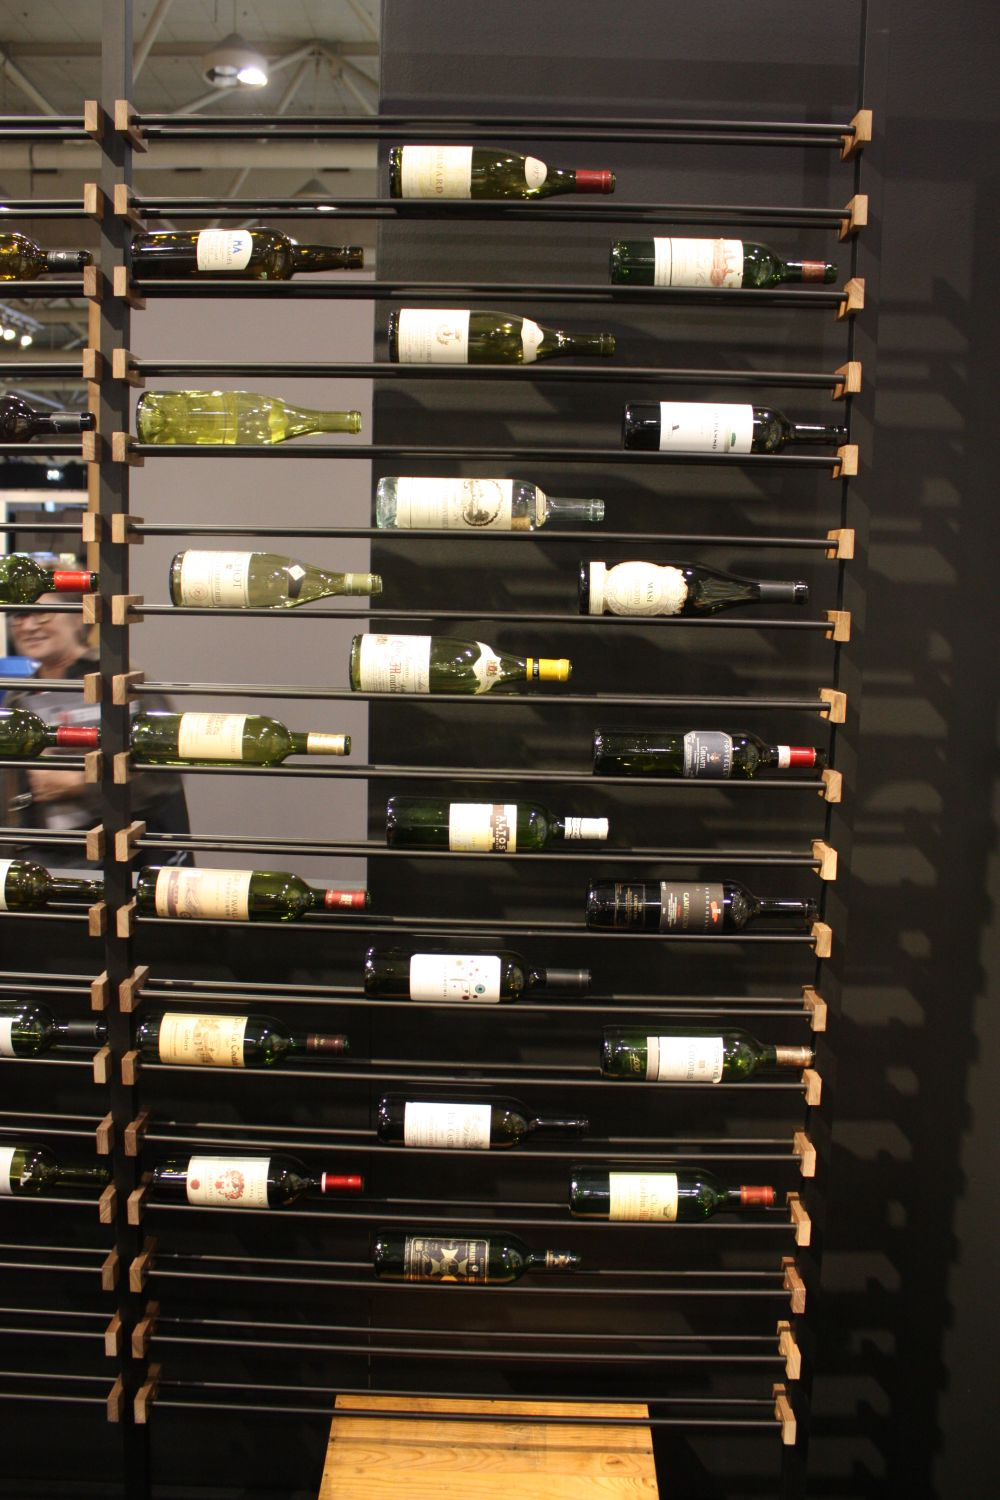 Wine Bottle Storage Angle Wine Rack Designs That Impress With Their Originality And Flair